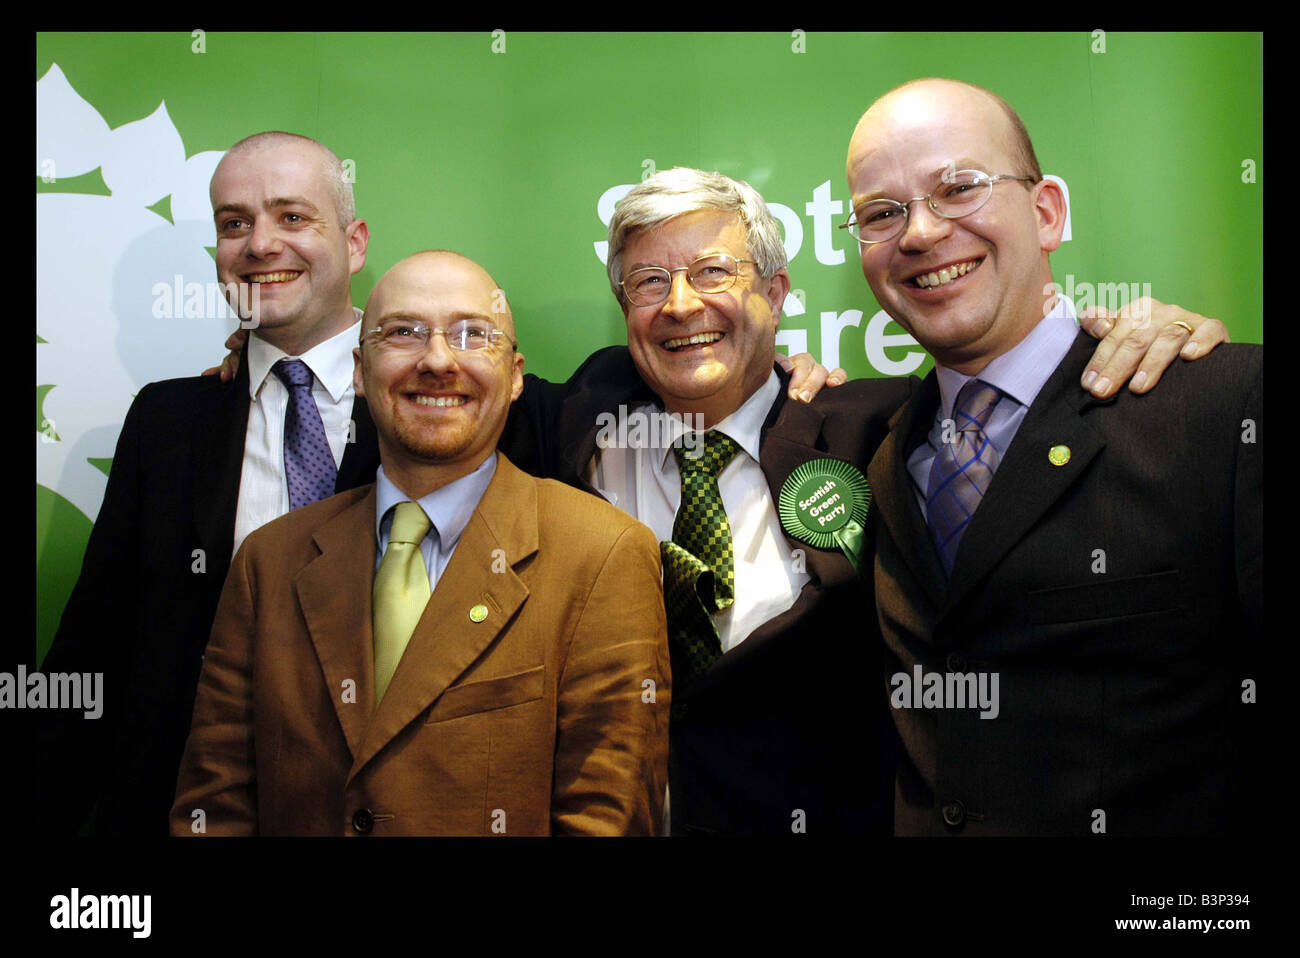 Scottish Green Party Members May 2003 Edinburgh L R Patrick Harvey Mark Ruskell Robin Harper And Mark Ballard - Stock Image